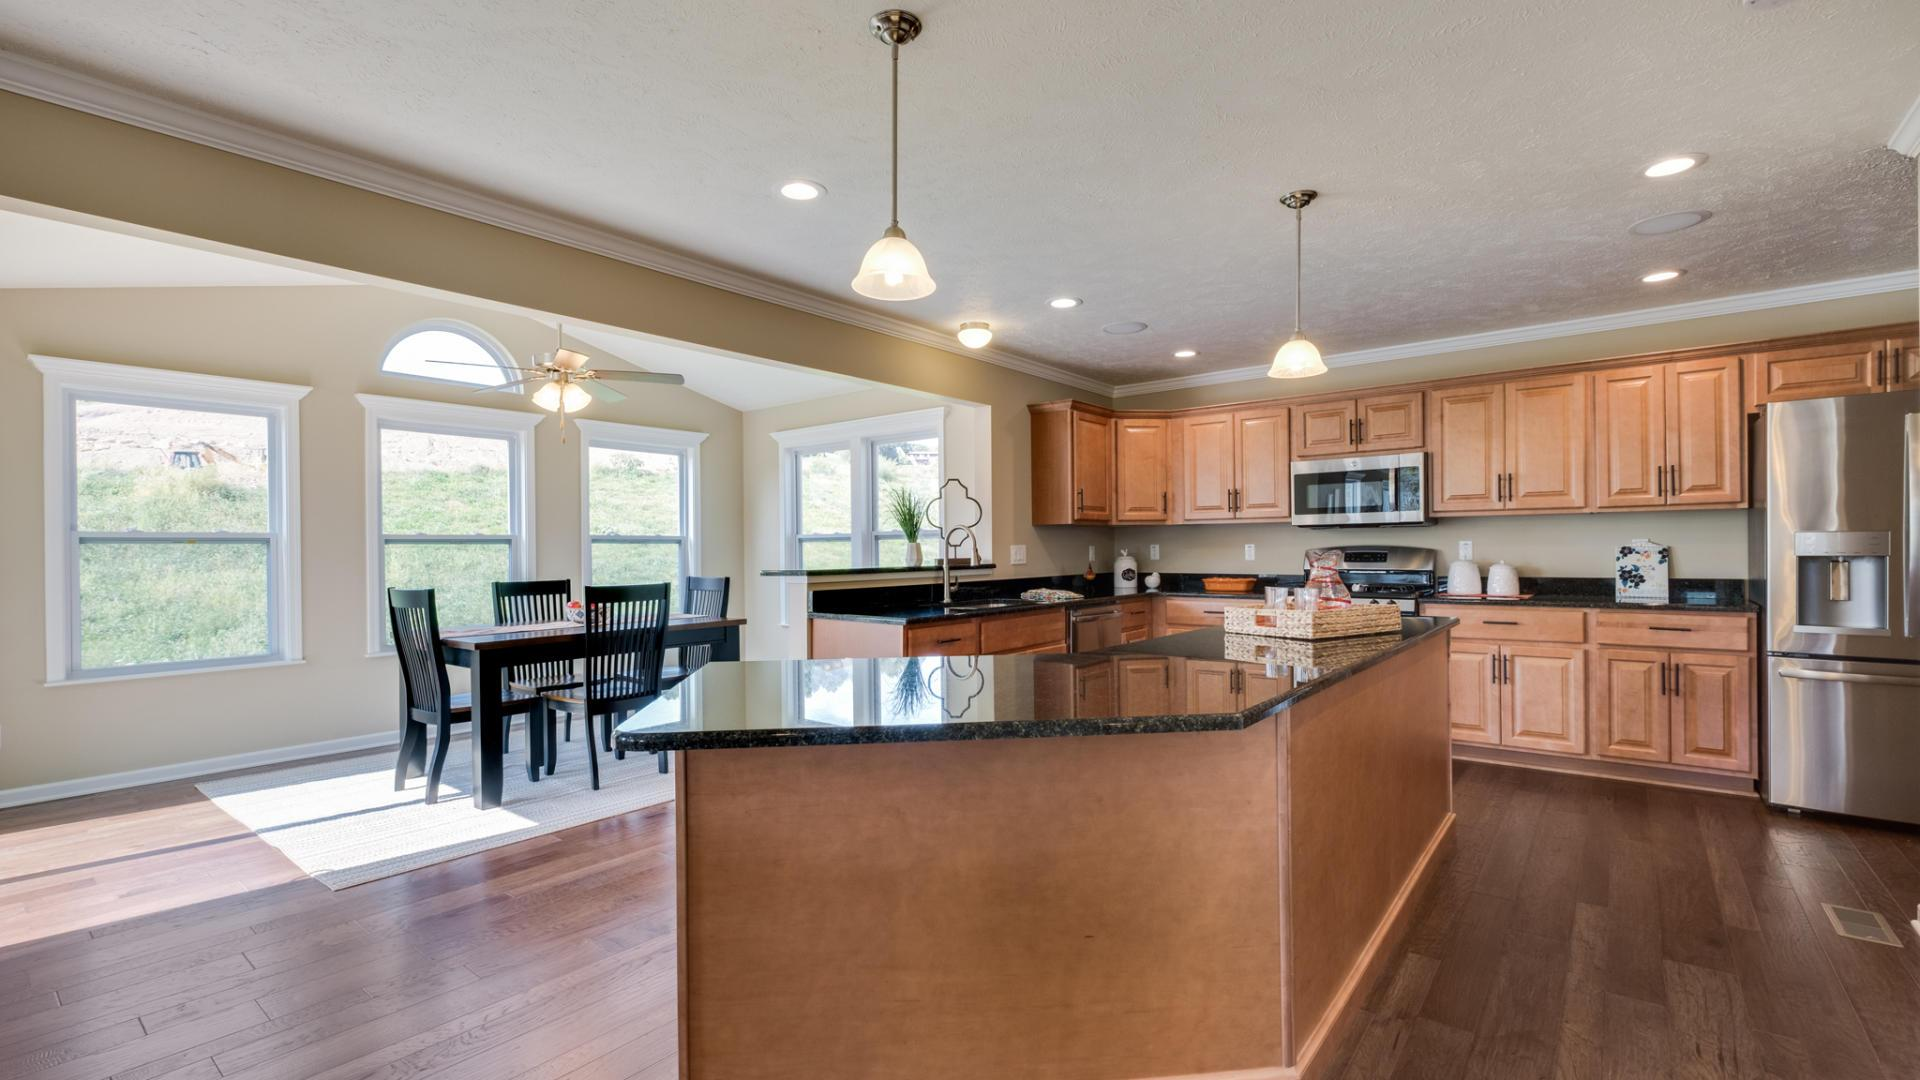 Kitchen featured in the Boston By Maronda Homes in Pittsburgh, PA